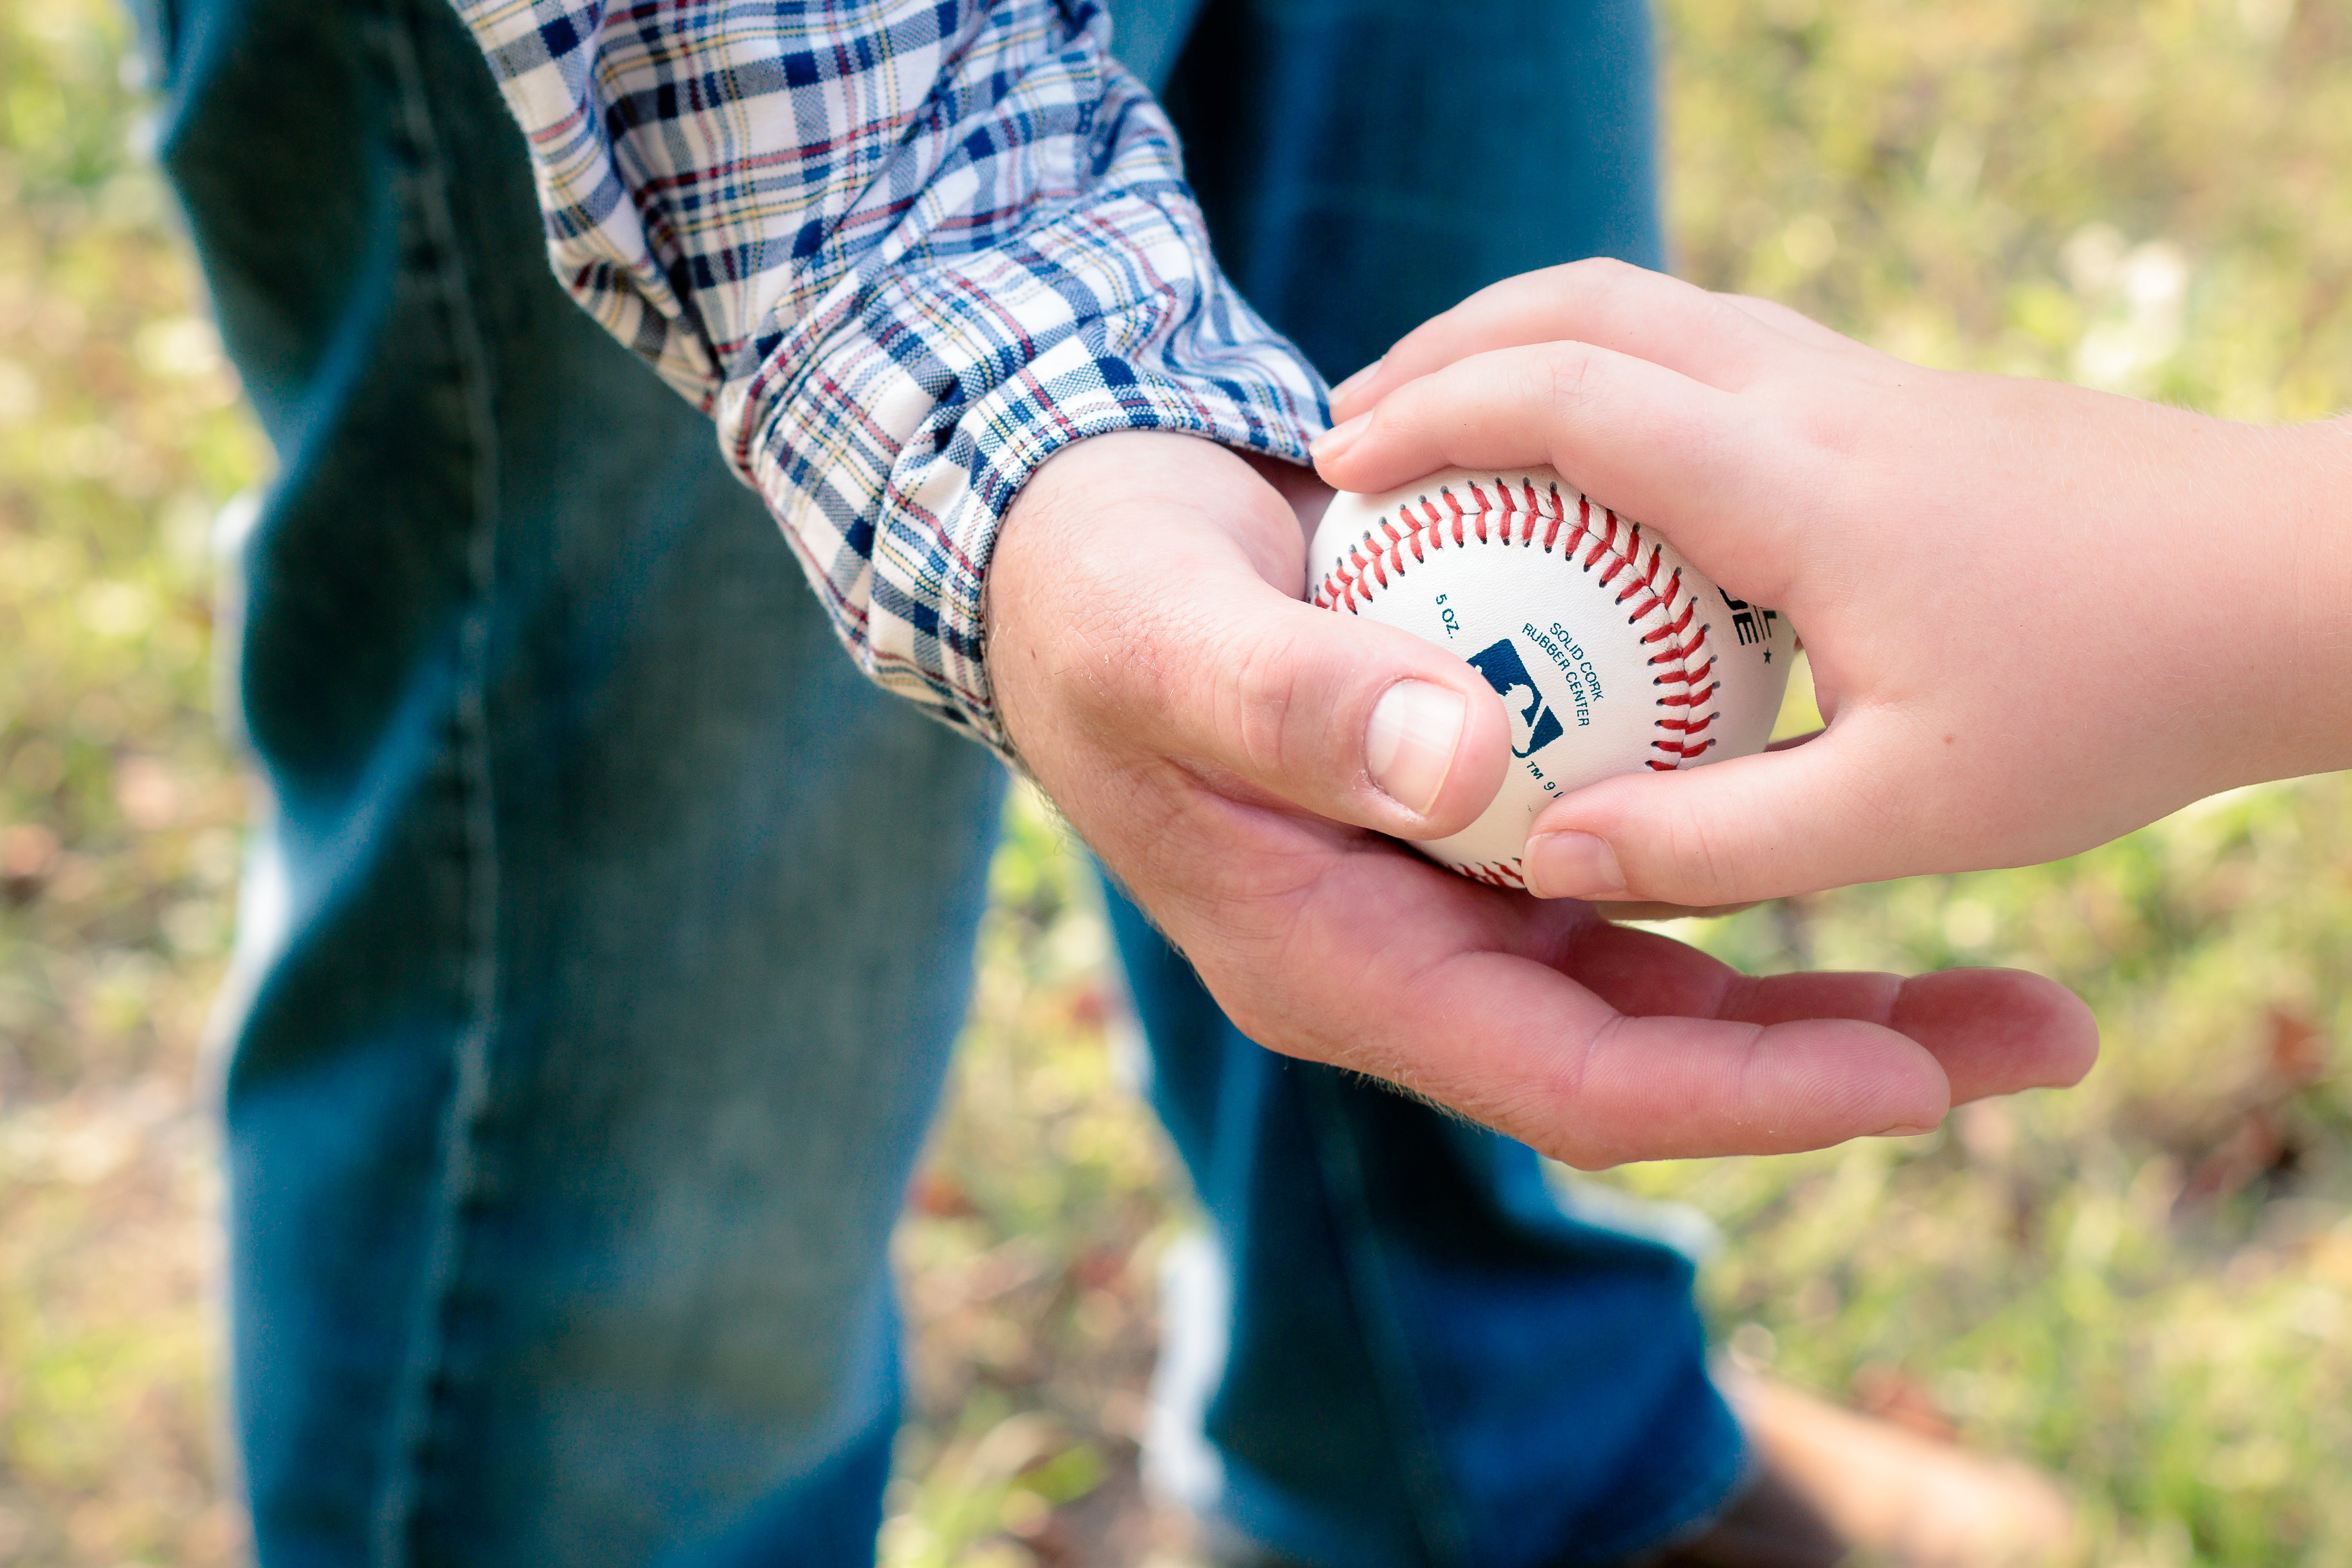 Two Person Holding White Baseball Ball